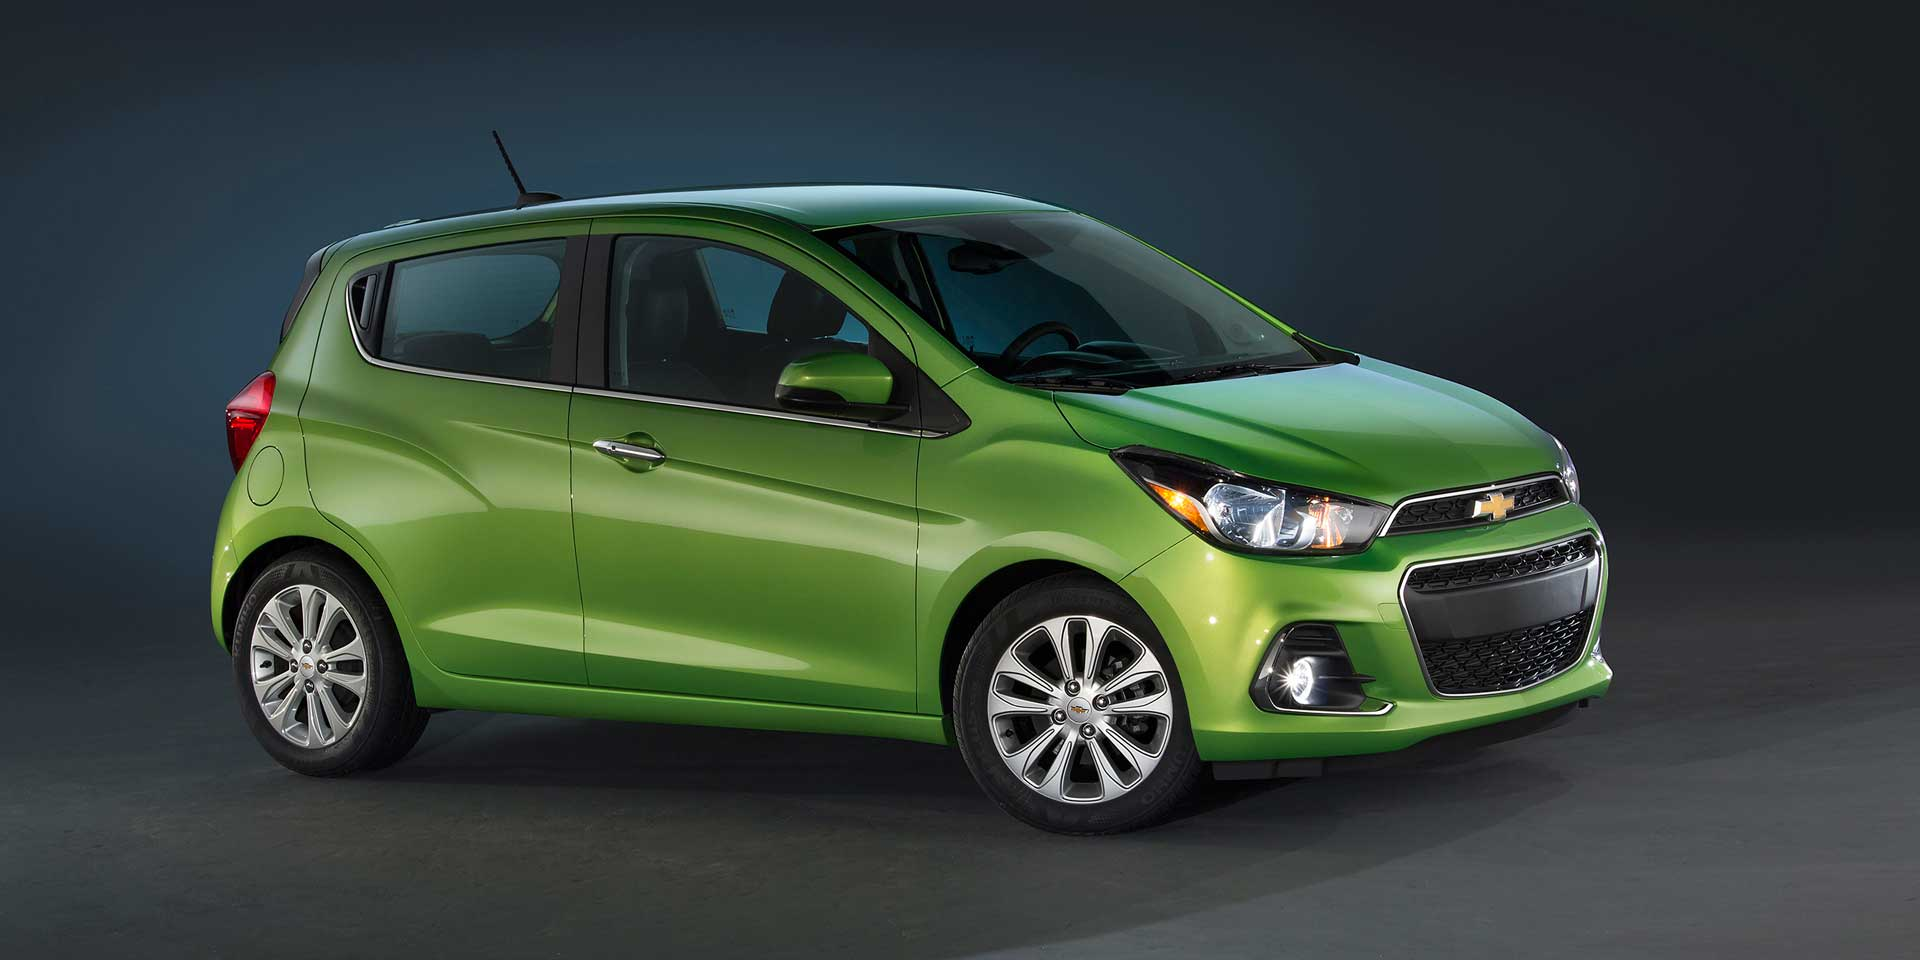 2017 Chevrolet Spark The Subcompact Competes With Ford Fiesta And For It Adds A Sport Version Called Activ